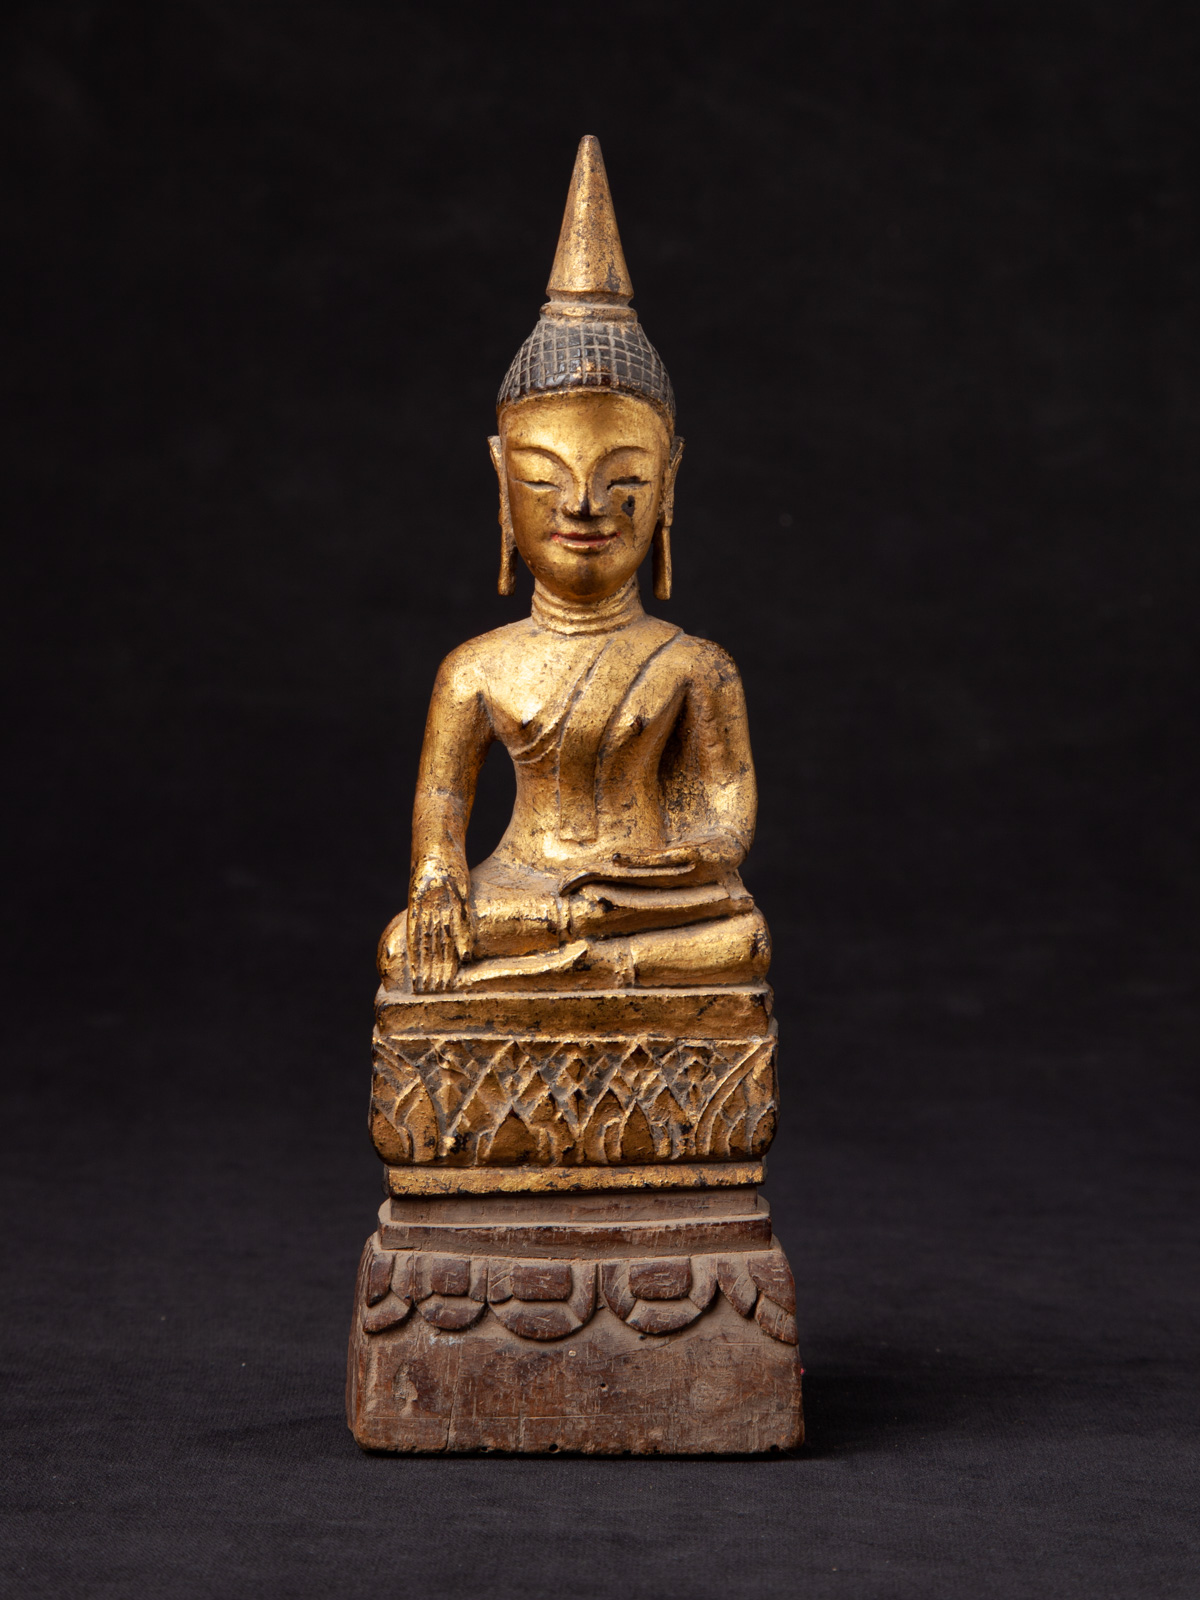 Antique wooden Thai Buddha statue from Thailand made from Wood